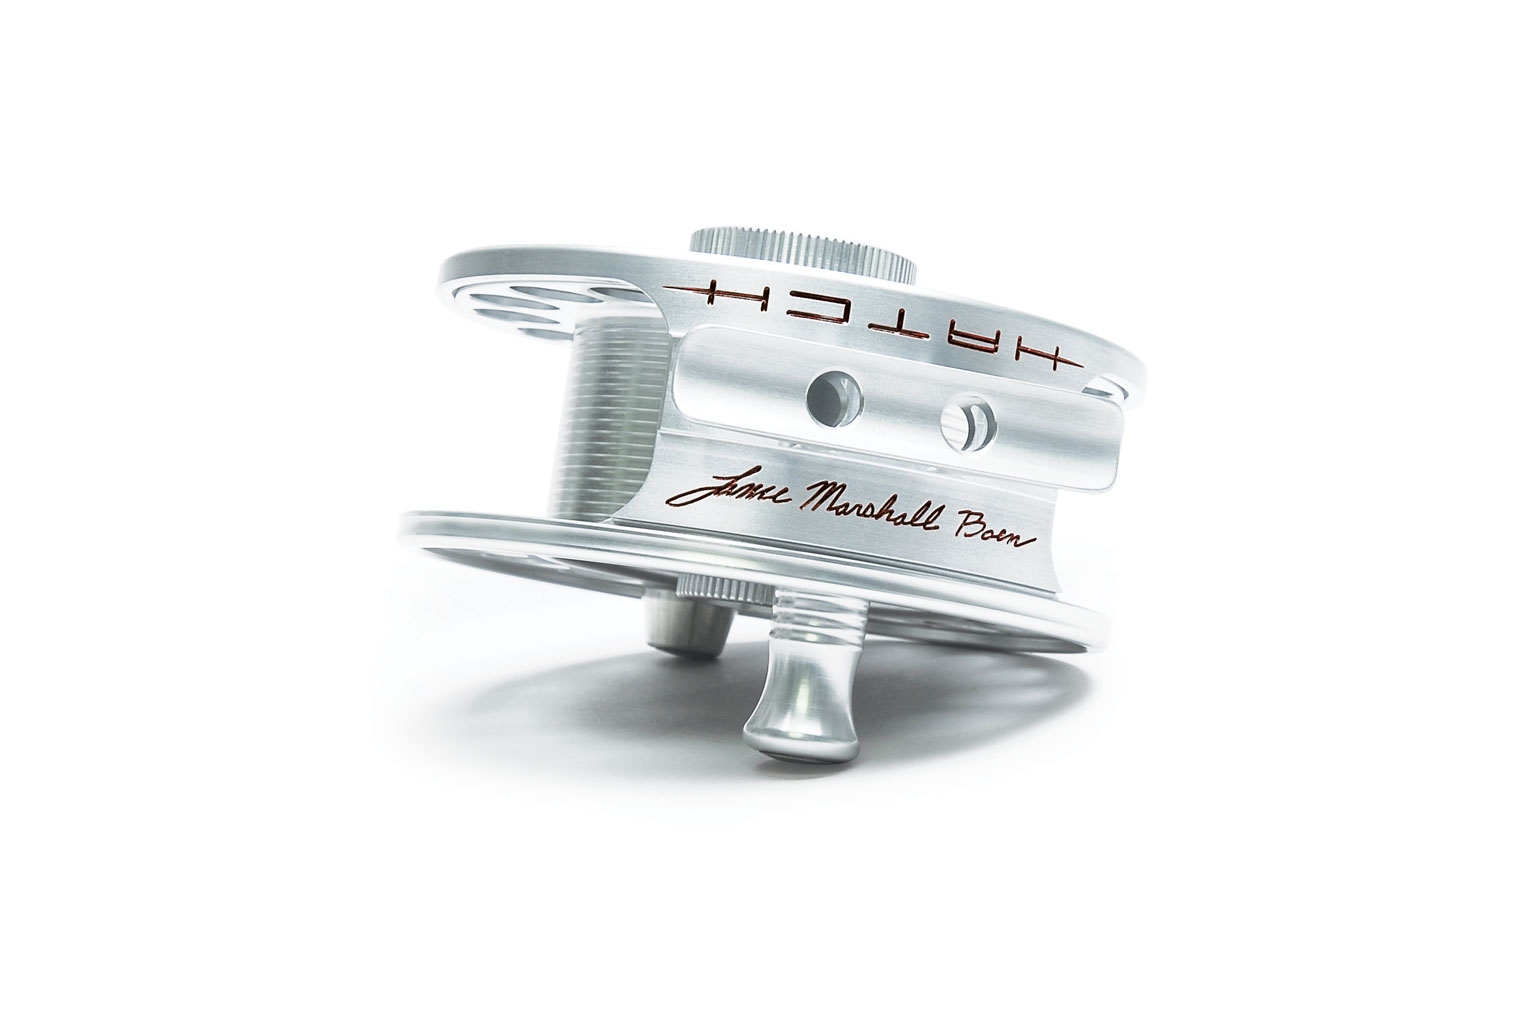 Special addition fly reel from Hatch Reels by Lance Marshall Boen